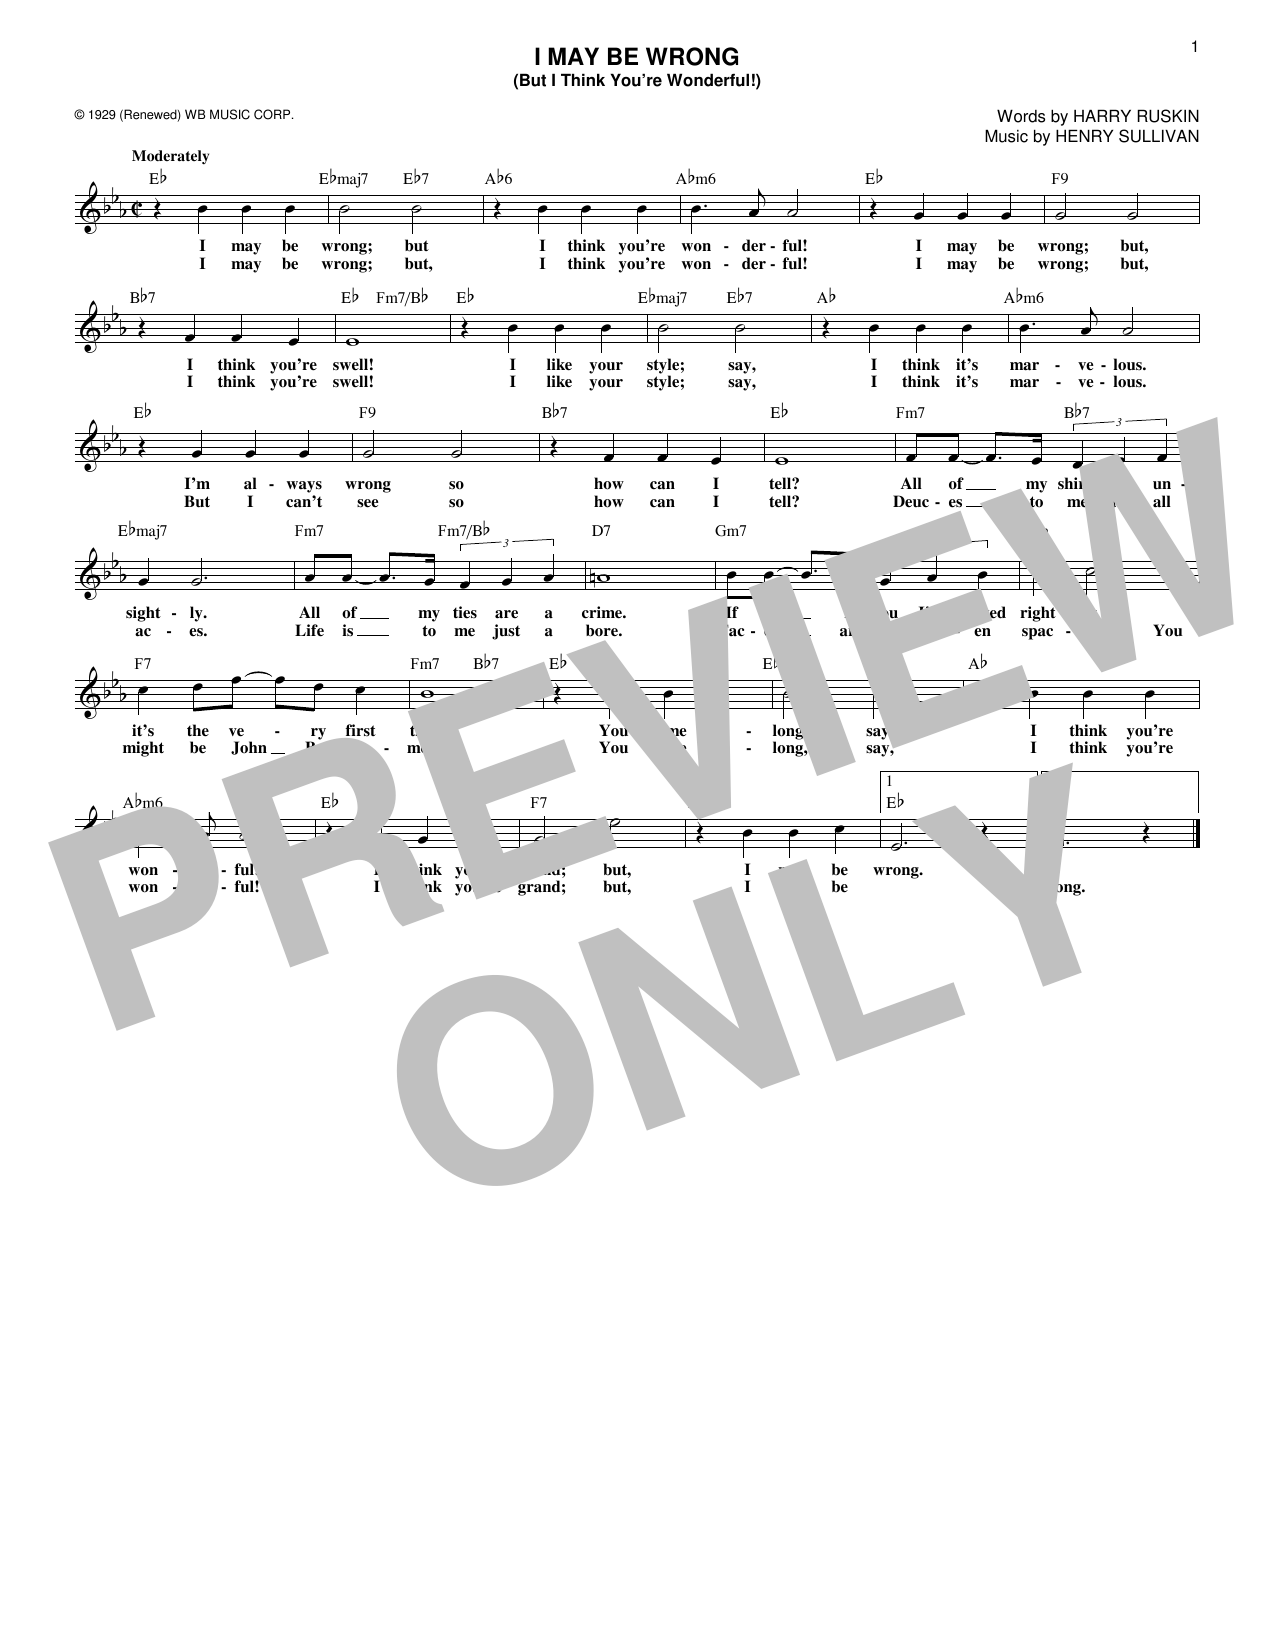 Harry Ruskin I May Be Wrong (But I Think You're Wonderful!) sheet music notes and chords. Download Printable PDF.